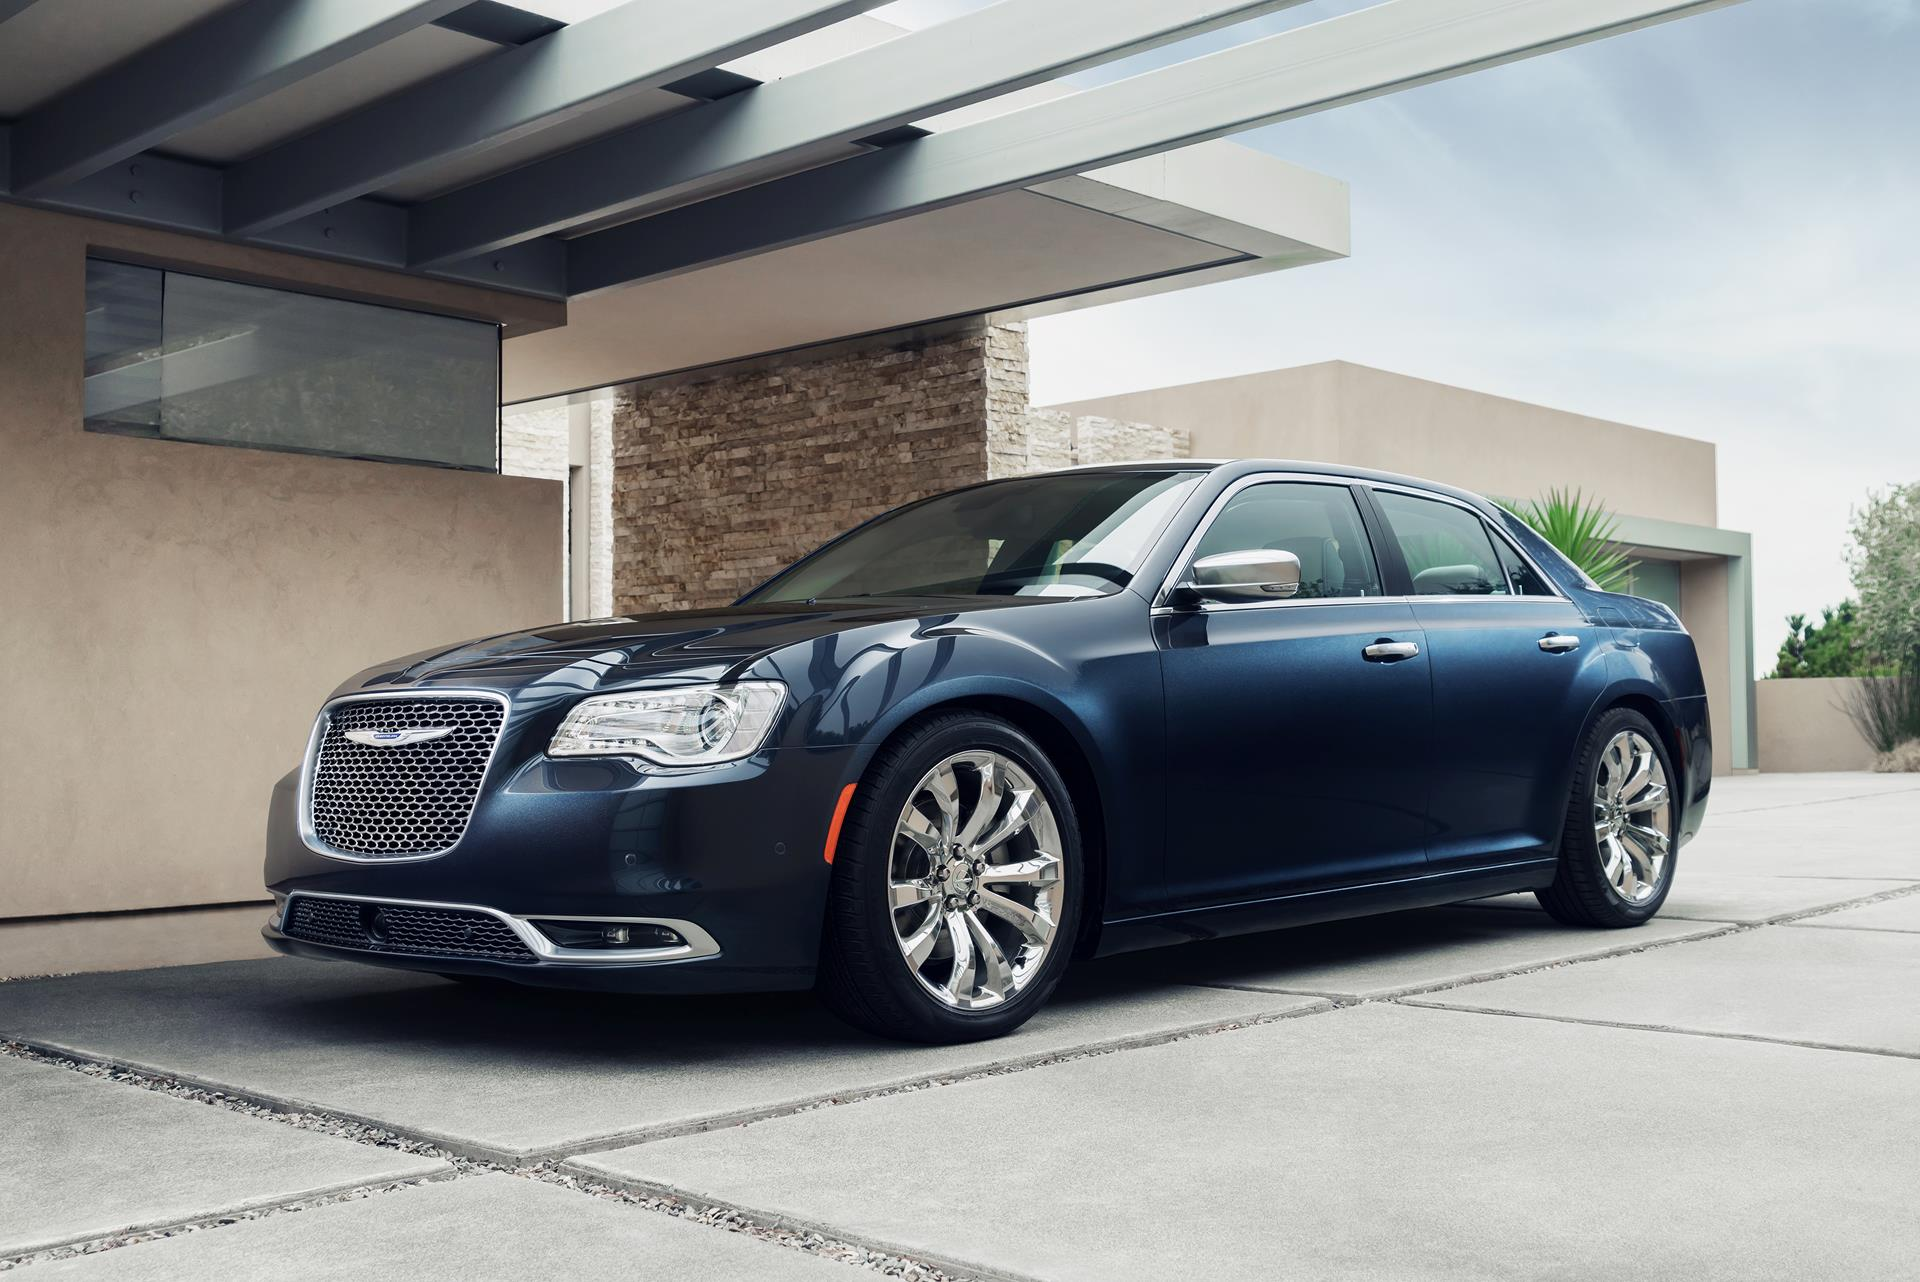 2015 chrysler 300 for Chrysler 300c